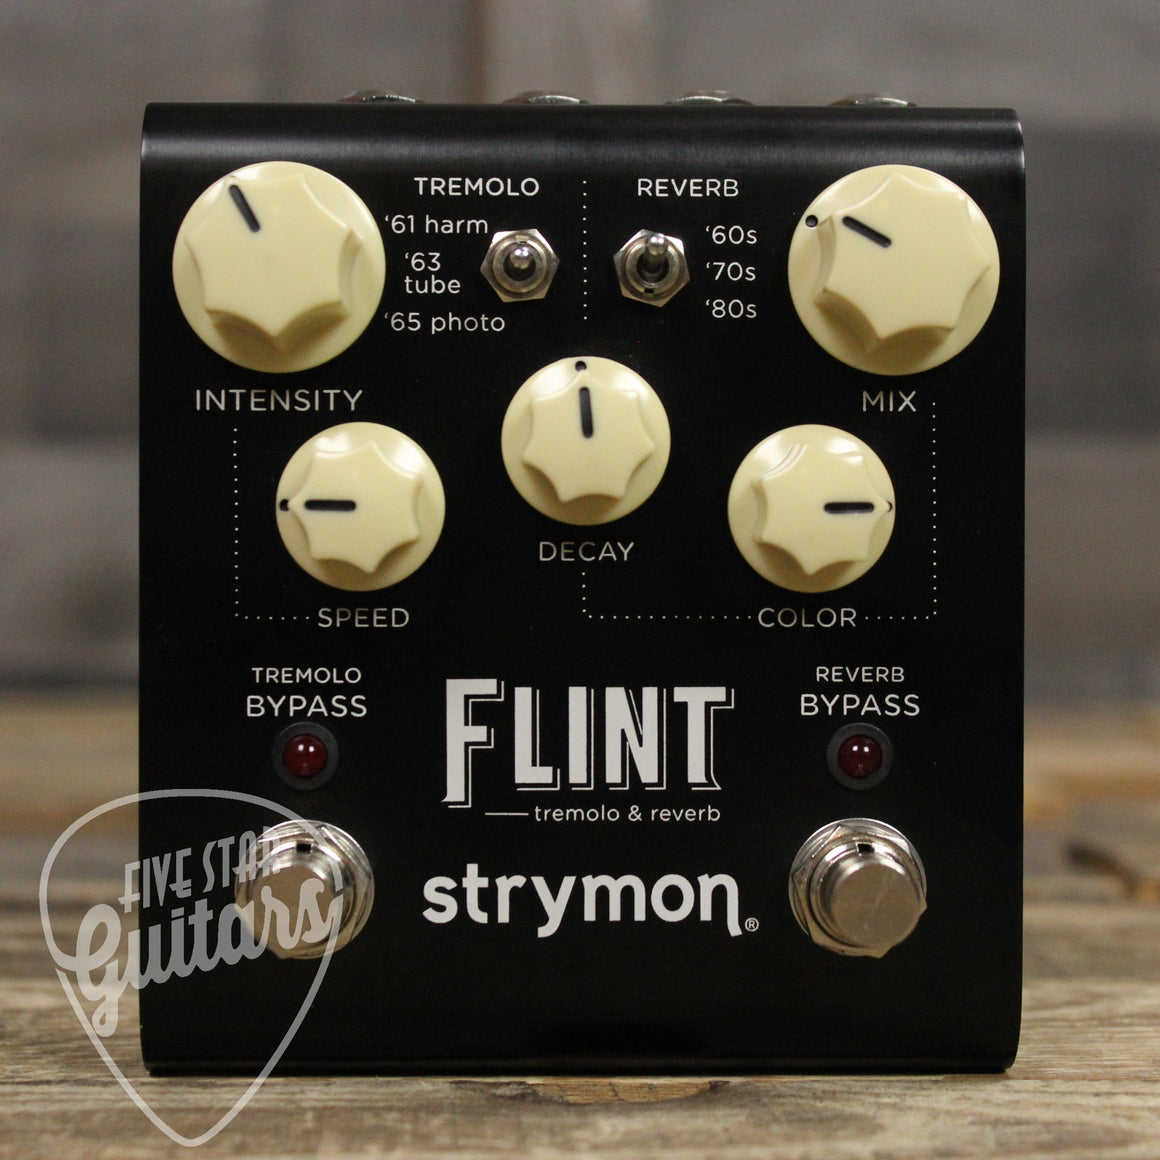 Pre-Owned Strymon Flint Reverb/Tremolo